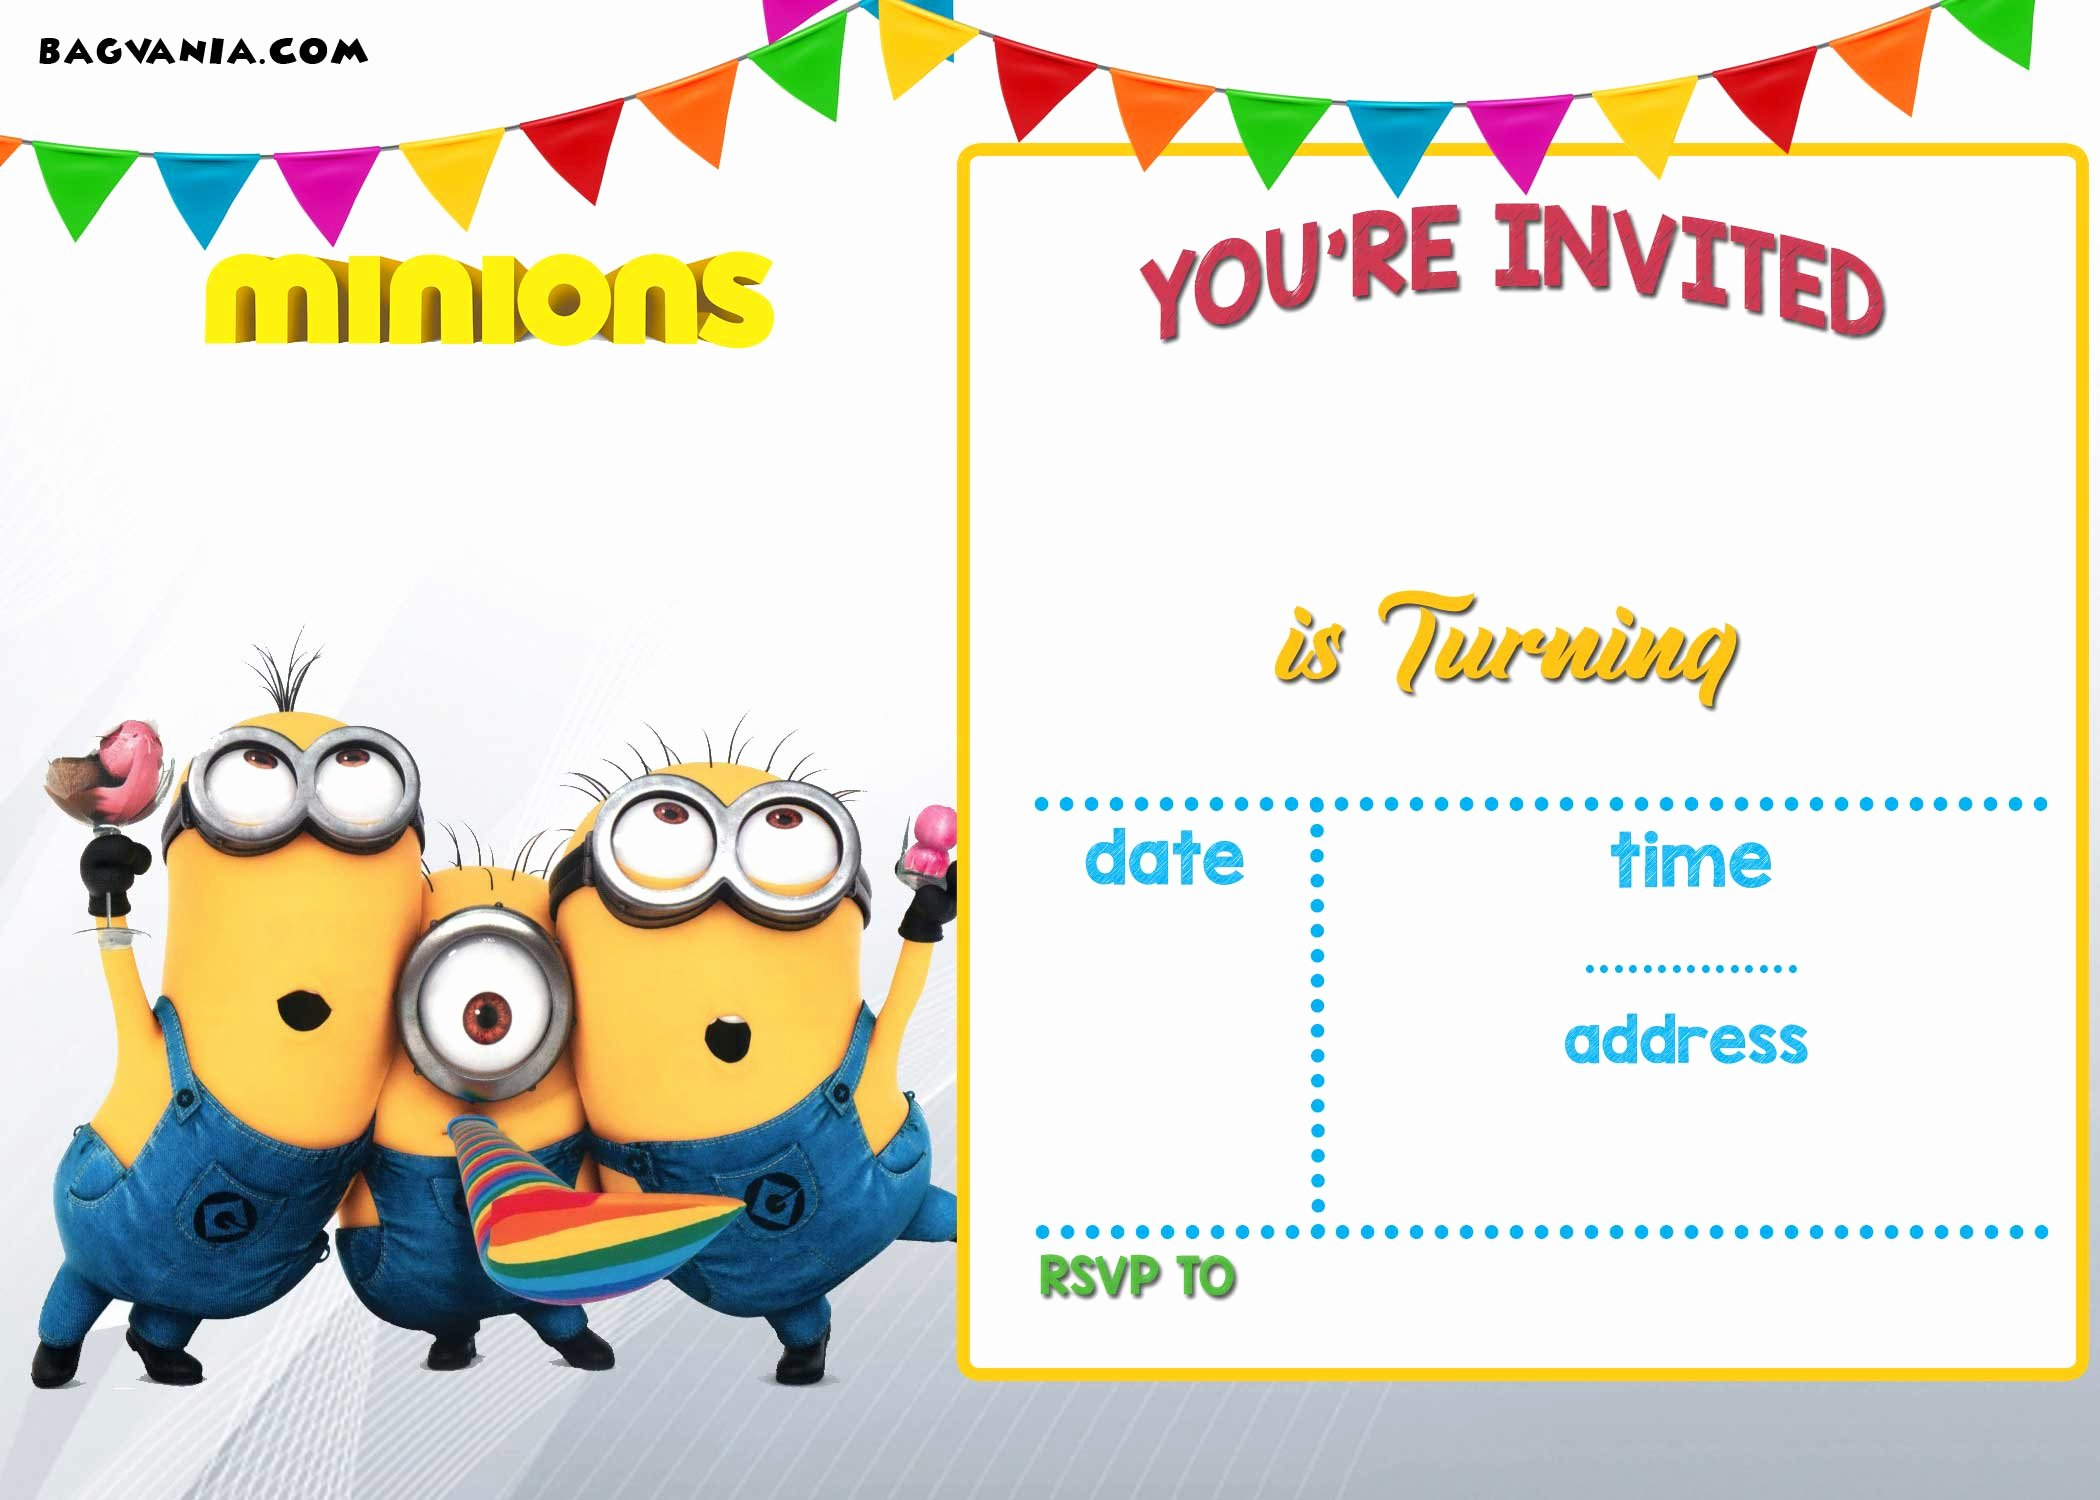 Minions Birthday Card Template Elegant Free Printable Minion Birthday Party Invitations Ideas